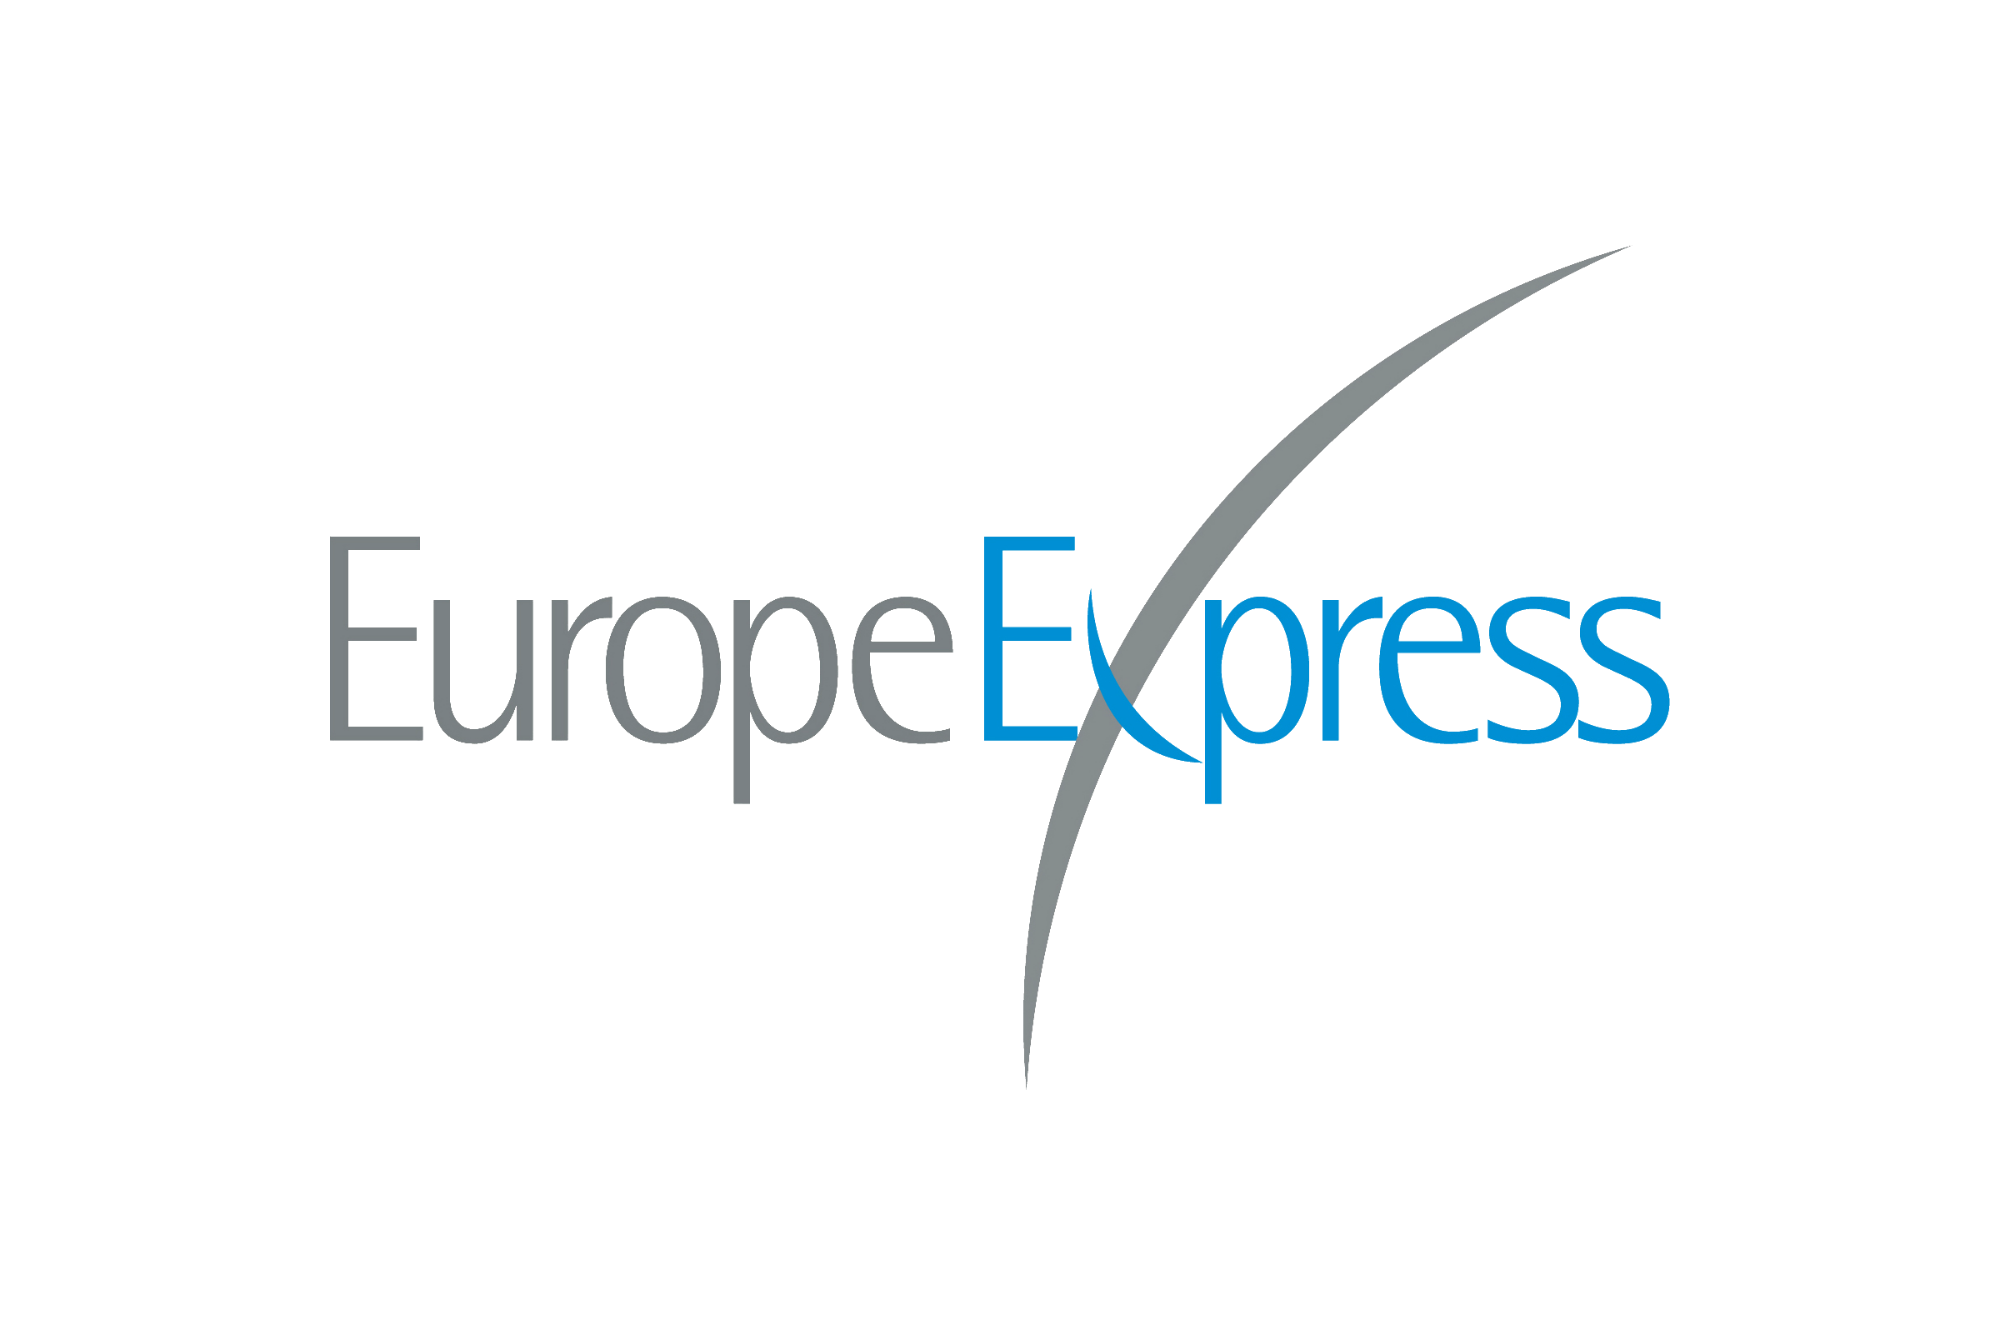 Europe Express - Dream of taking in the Cliffs of Moher? How about riding in a gondola in Venice? We are prepared to help create the trip of your dreams with Europe Express! Just pack your bags - we'll handle the rest!